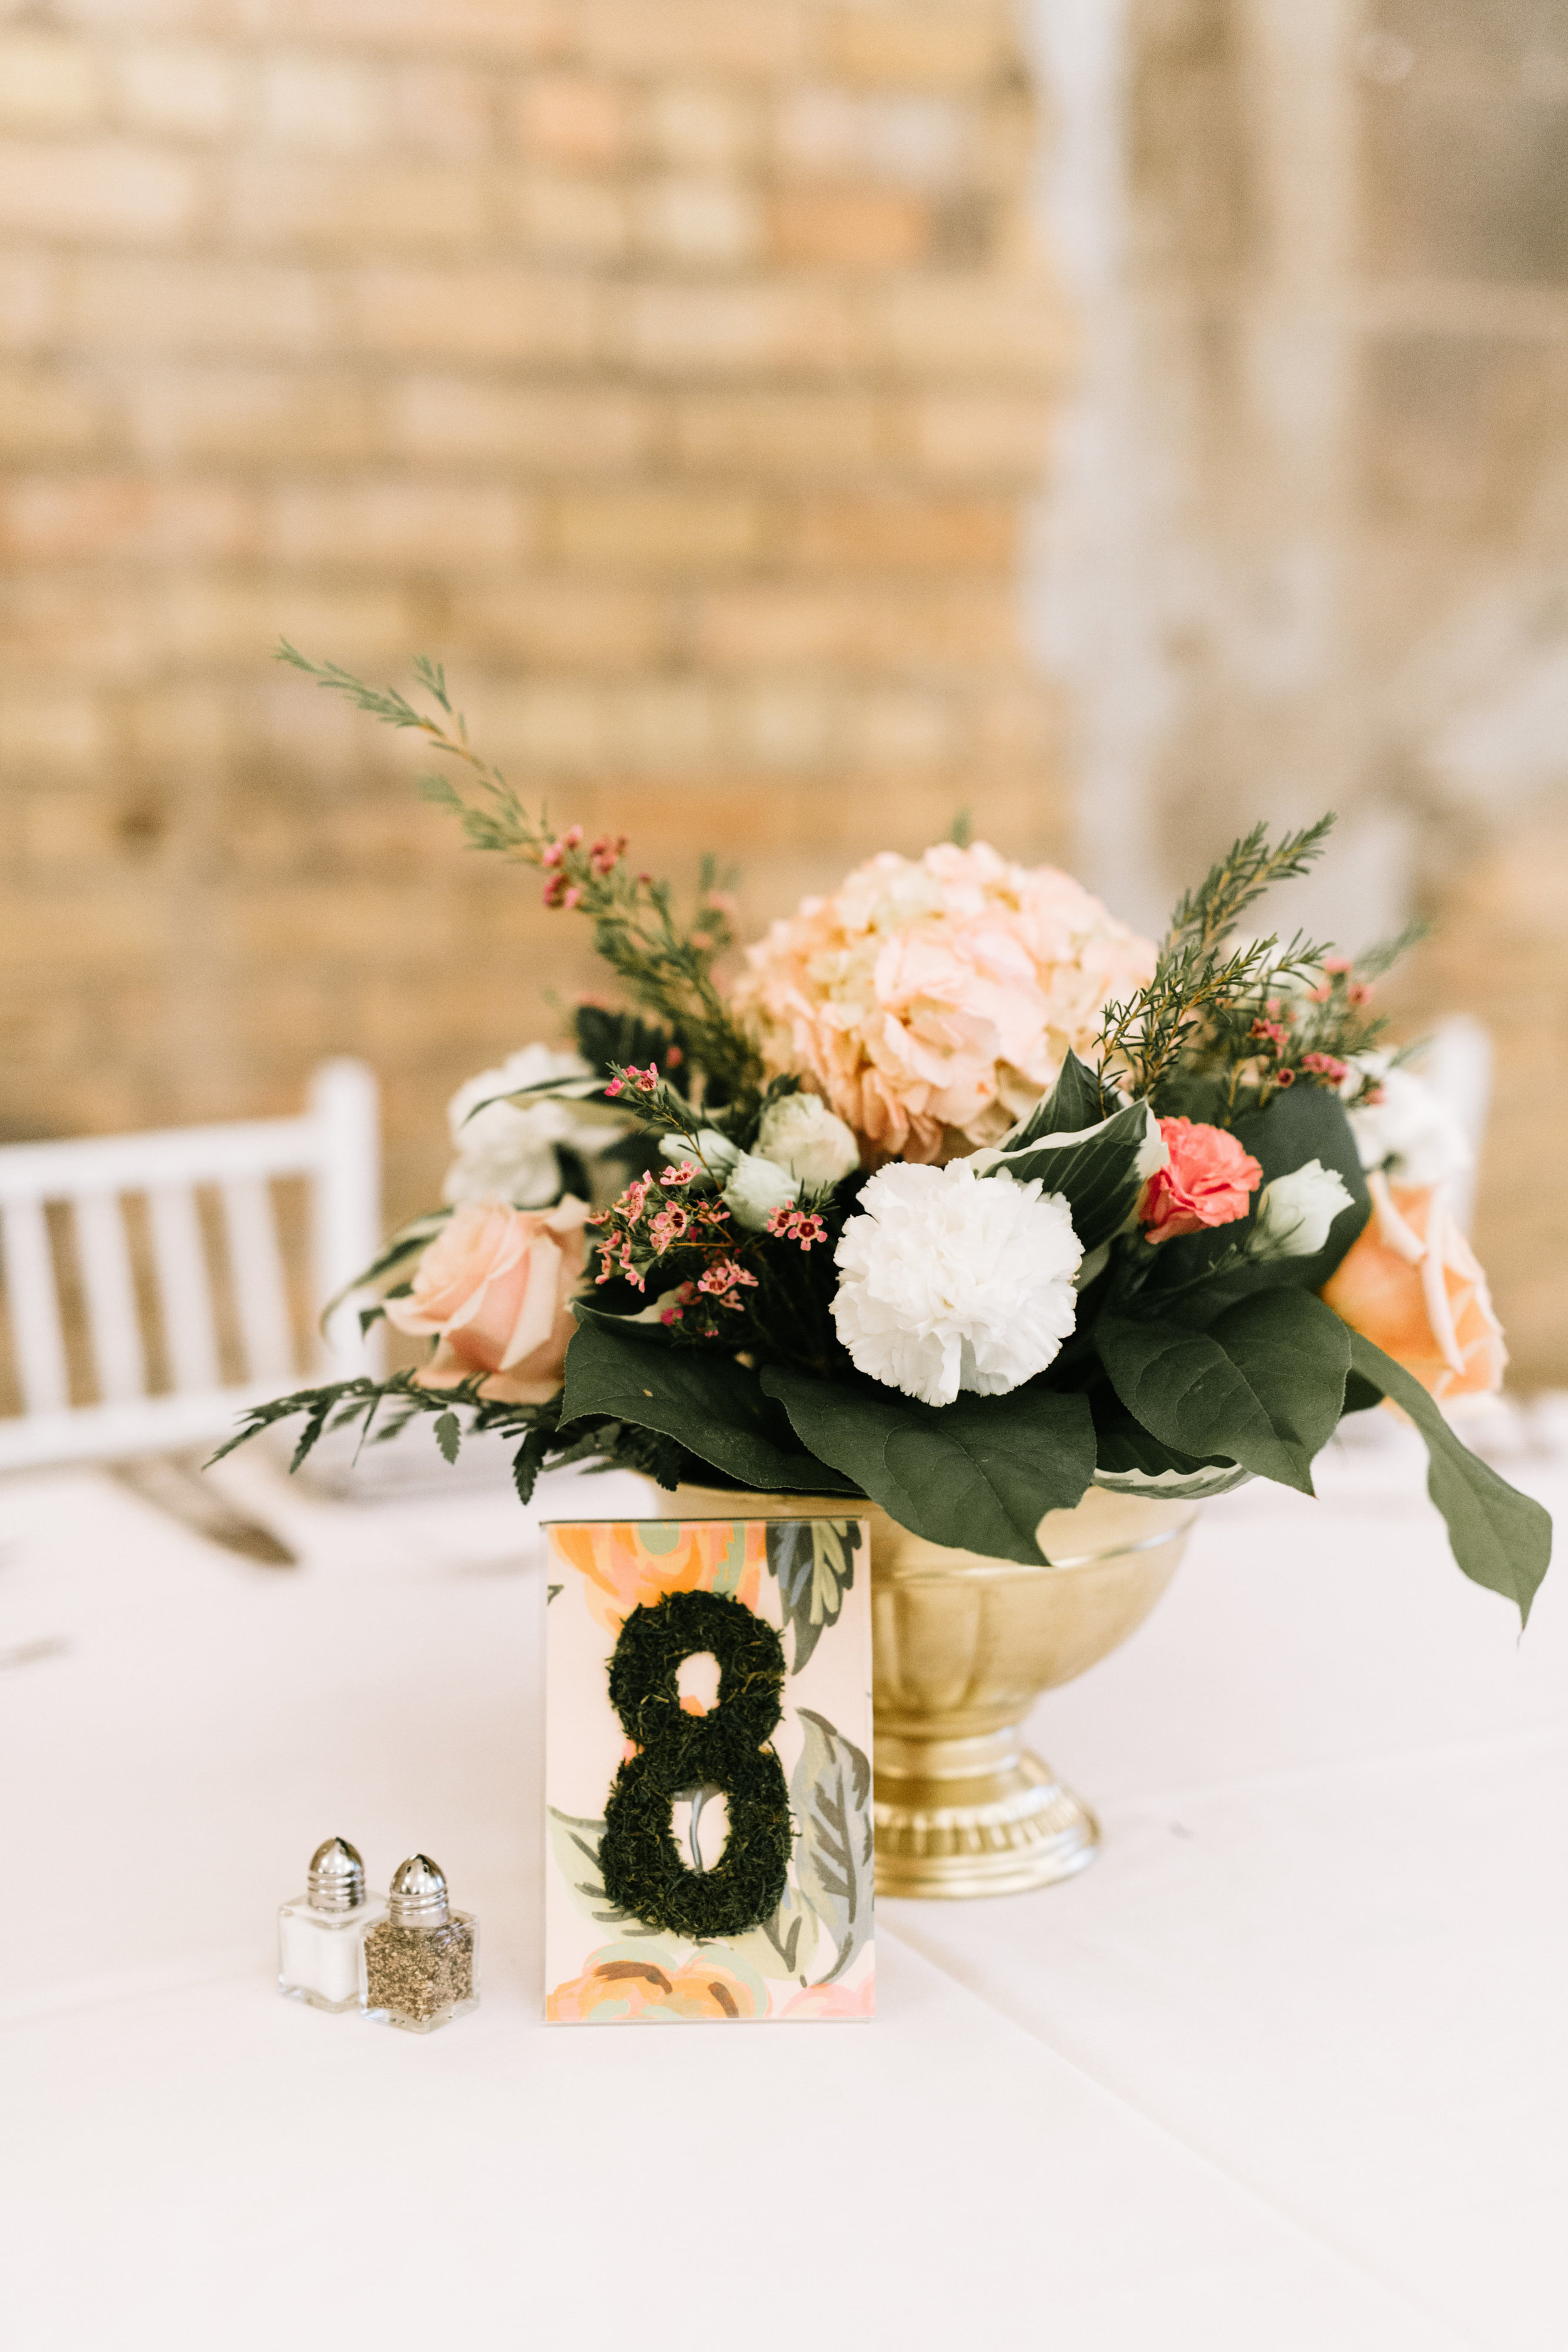 Lydia + Michael Sixpence Events day of coordinating client | Loring Social | Kate Becker Photography | Mann Frau Videography | Minted wedding stationery | moss table number with flower arrangement in gold compote bowl